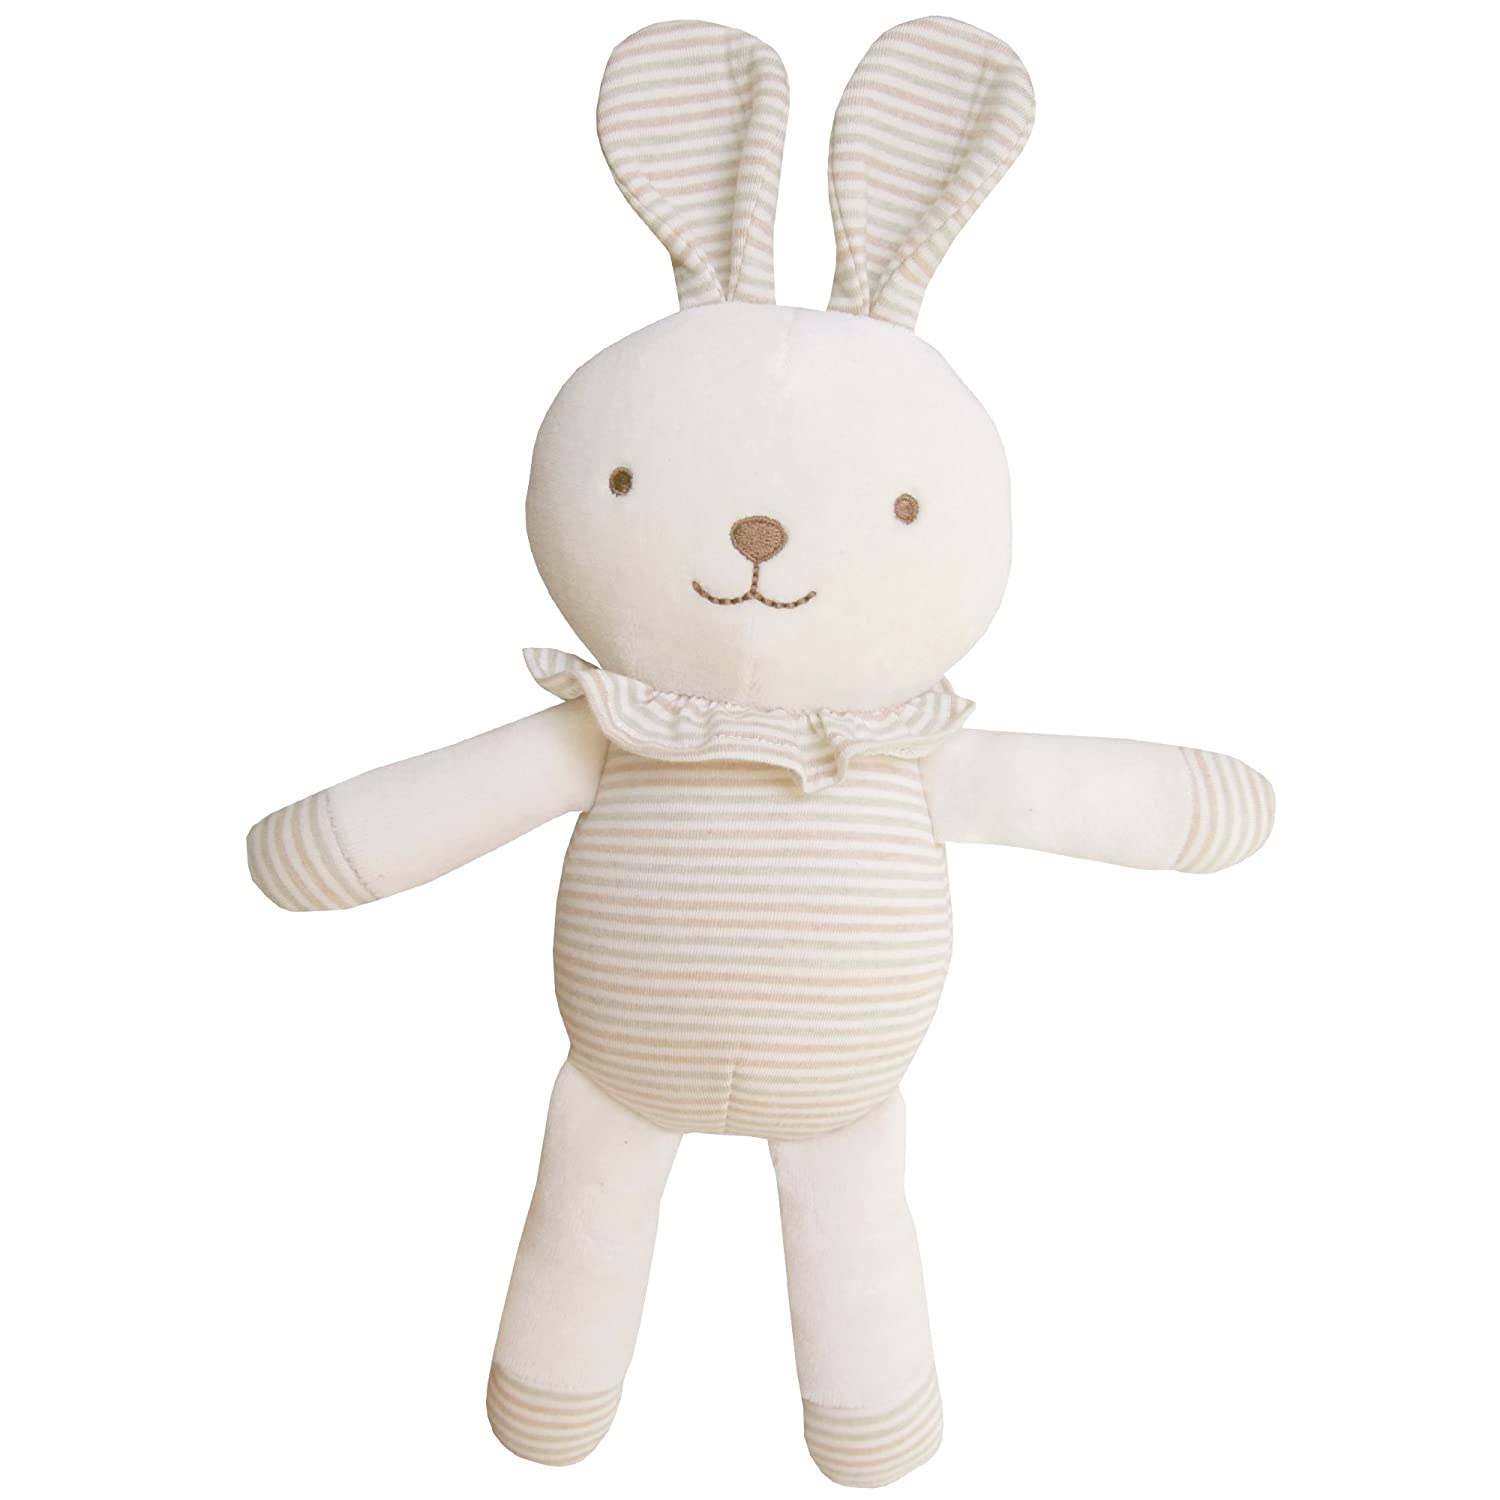 (Lovely Kitty)100% Organic Cotton Baby First Doll 11 inches No Dyeing JOHN N TREE Organic 6363554